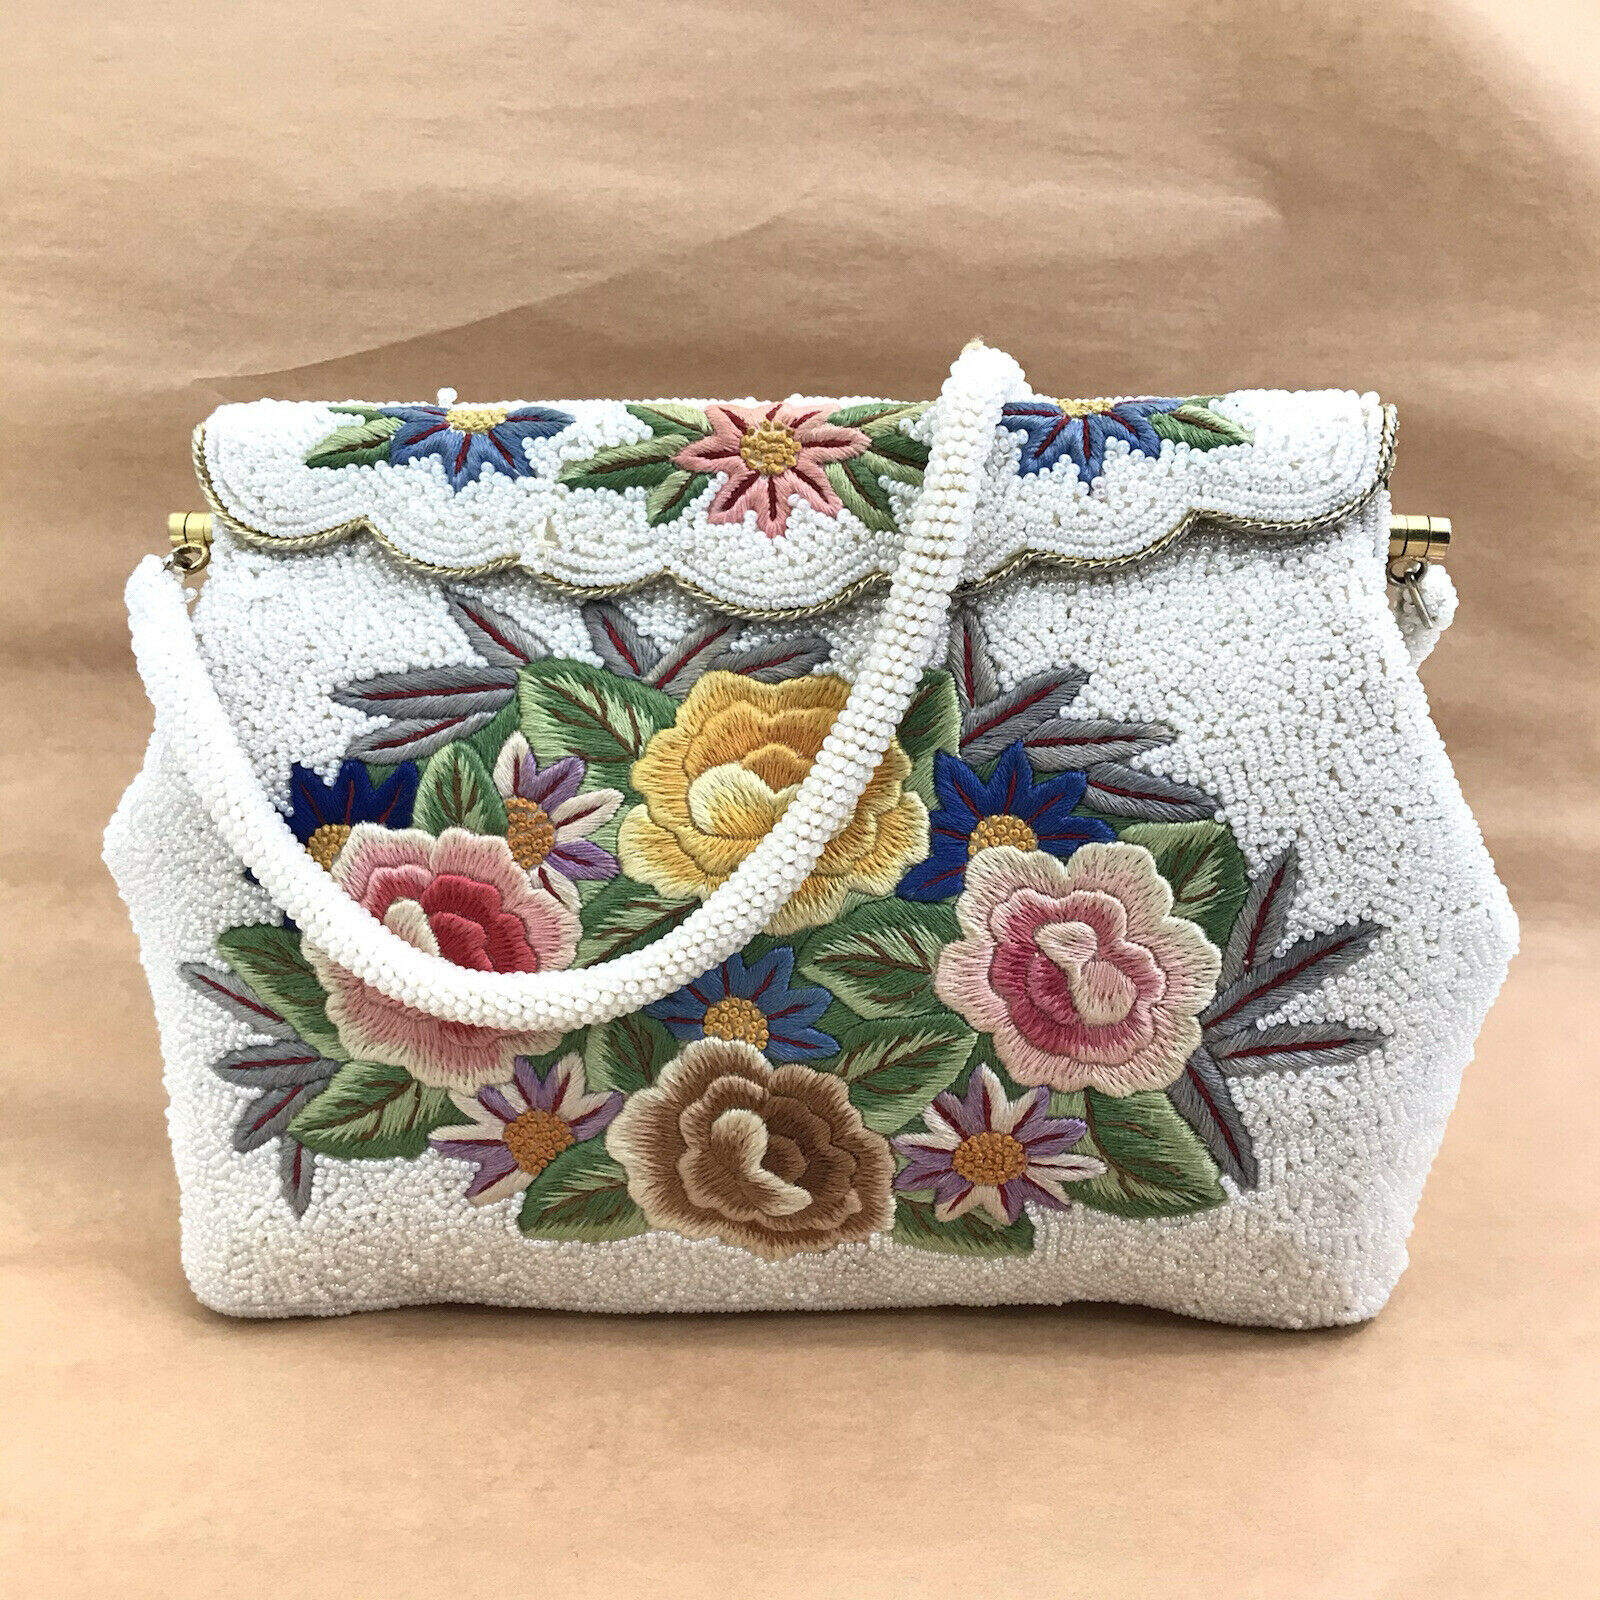 VINTAGE 50s Micro Beaded White Floral Needlepoint Purse Clutch Gold Evening Bag